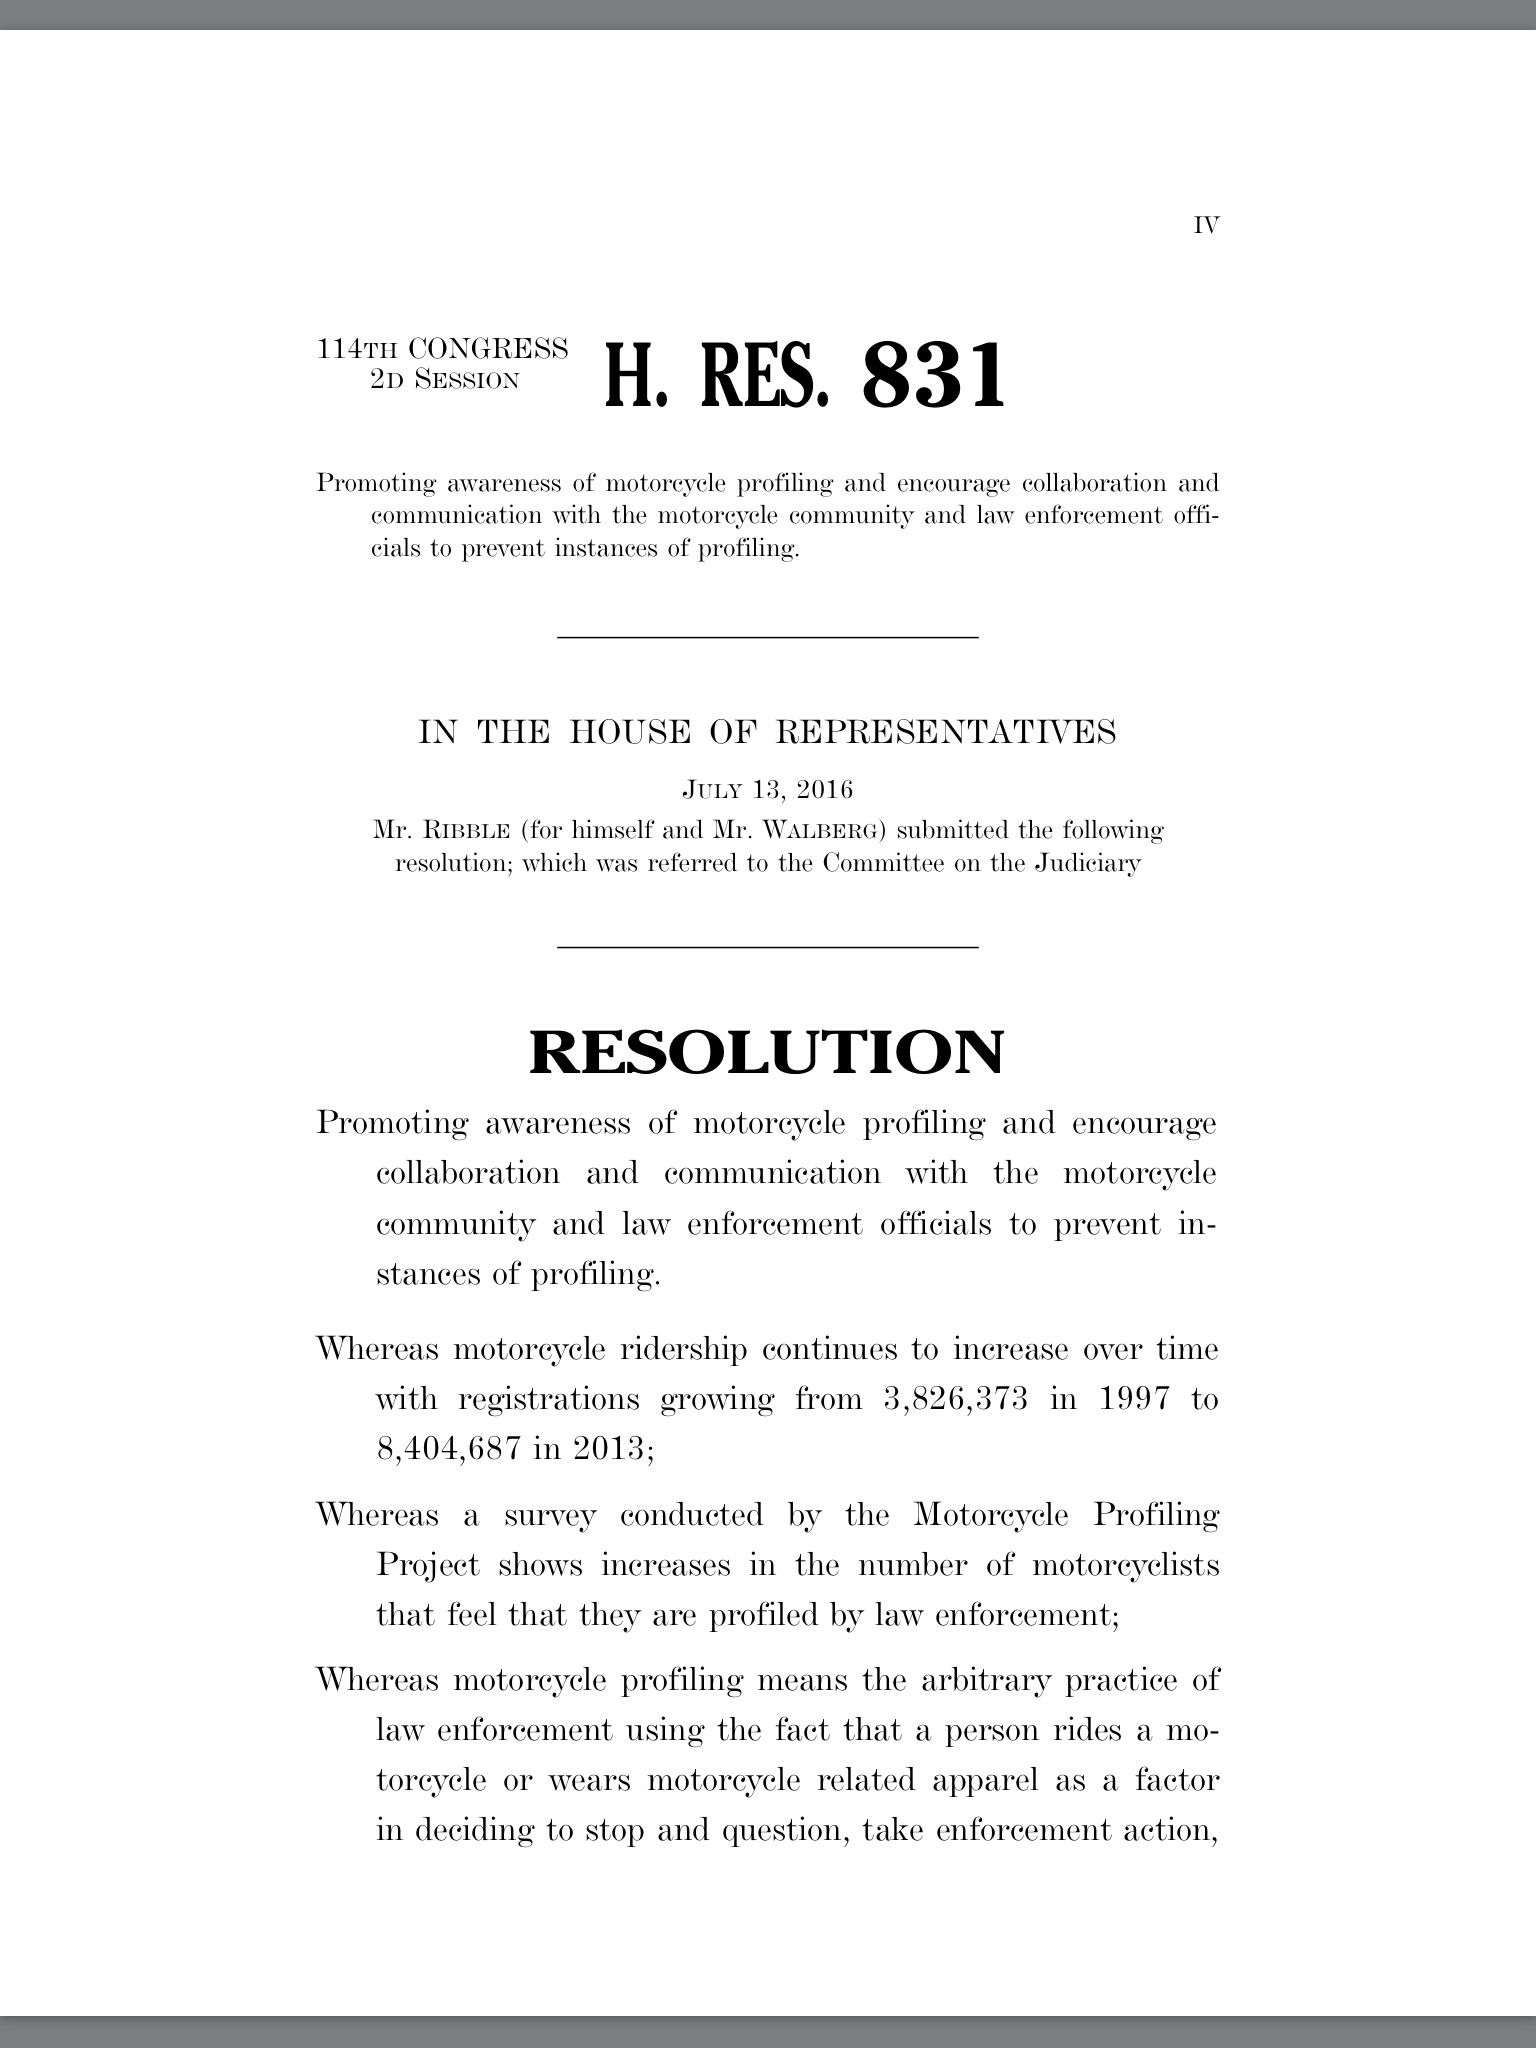 US-House-Resolution-831-page1